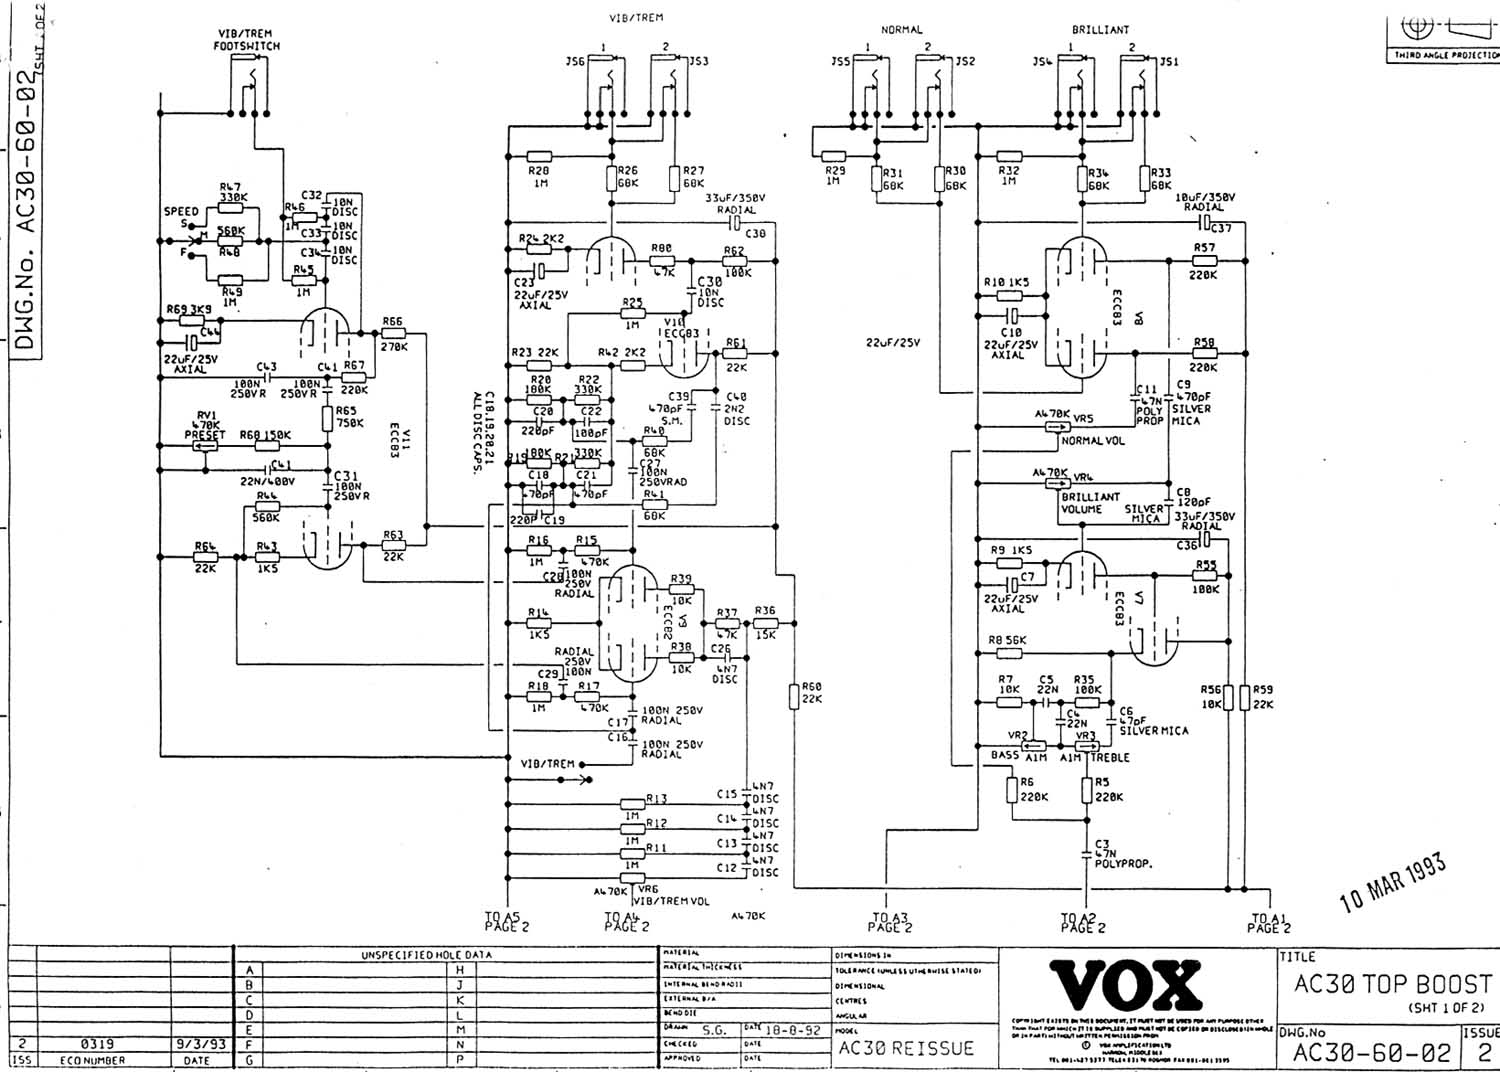 super foundation bass preamp stage 1969 diagram